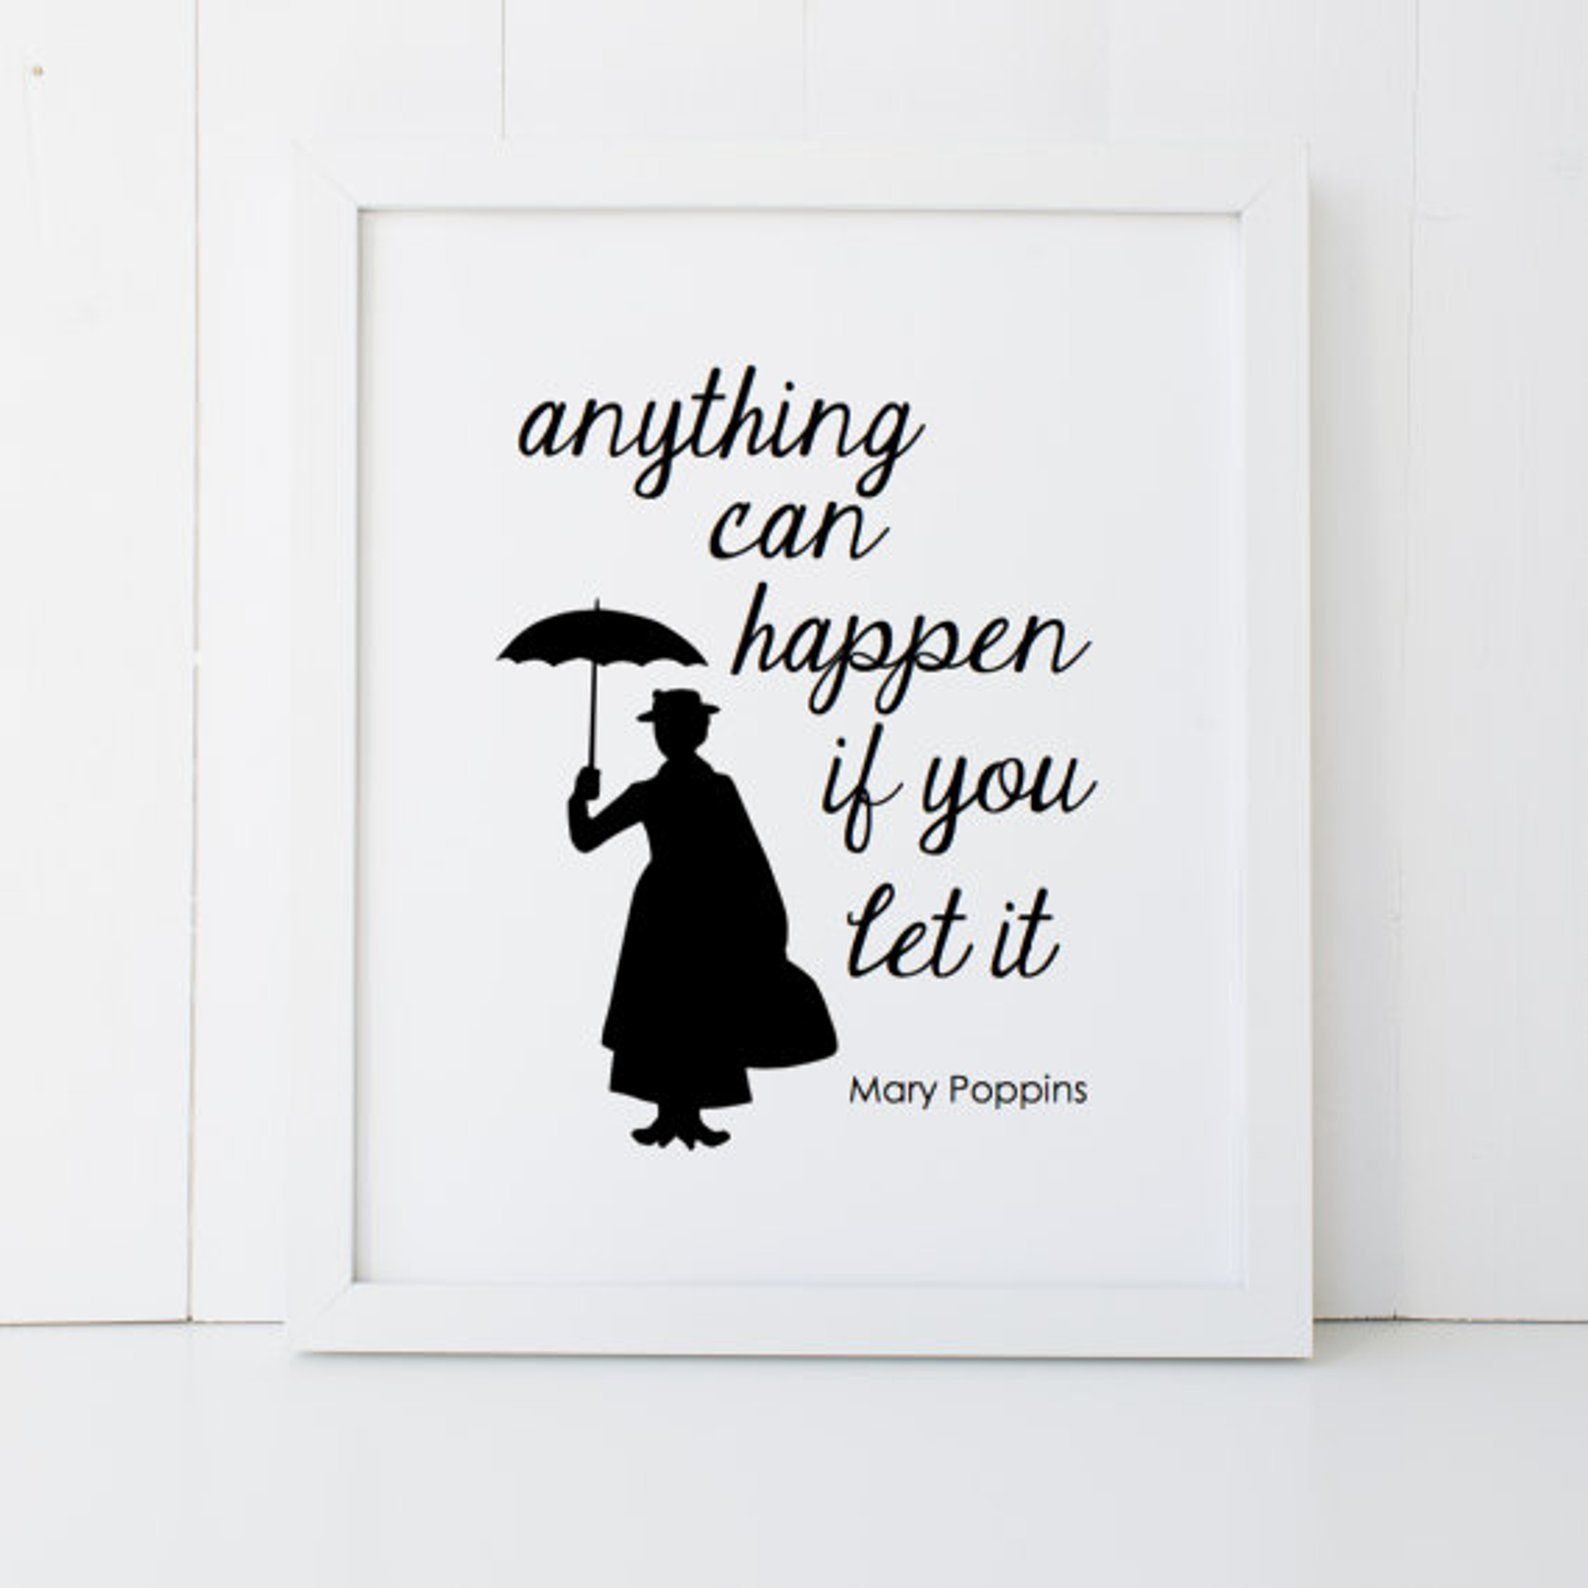 Mary Poppins Quote Disney Home Decor Printable Poster Wall Art Etsy In 2021 Mary Poppins Quotes Disney Wall Art Disney Home Decor